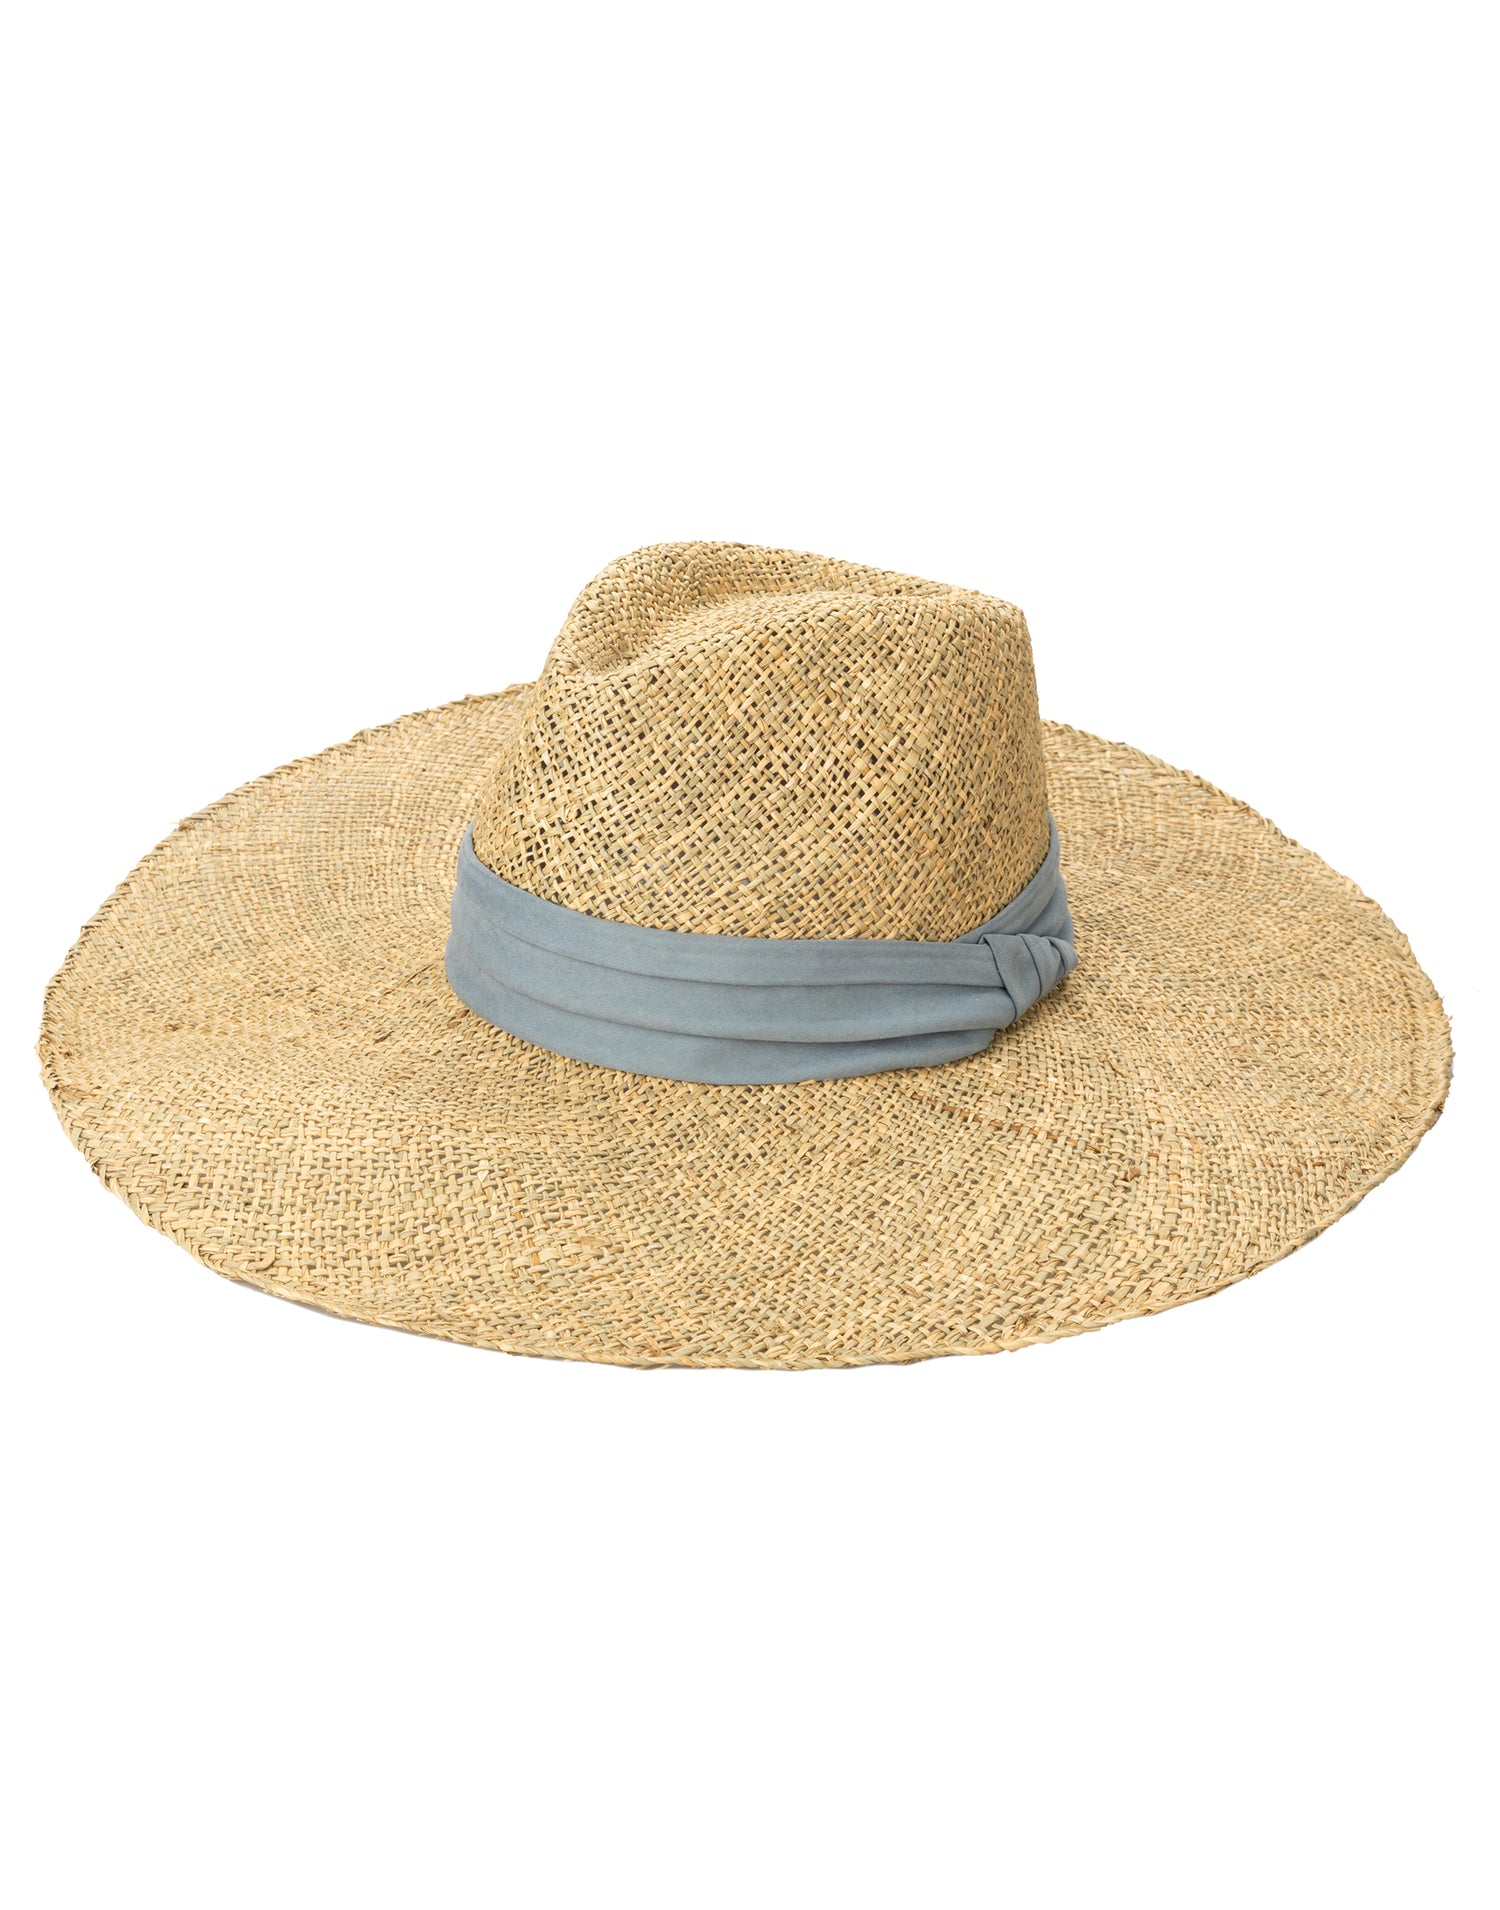 San Diego Hat Company's Floppy Fedora in Natural with Faux Suede Band - Product View